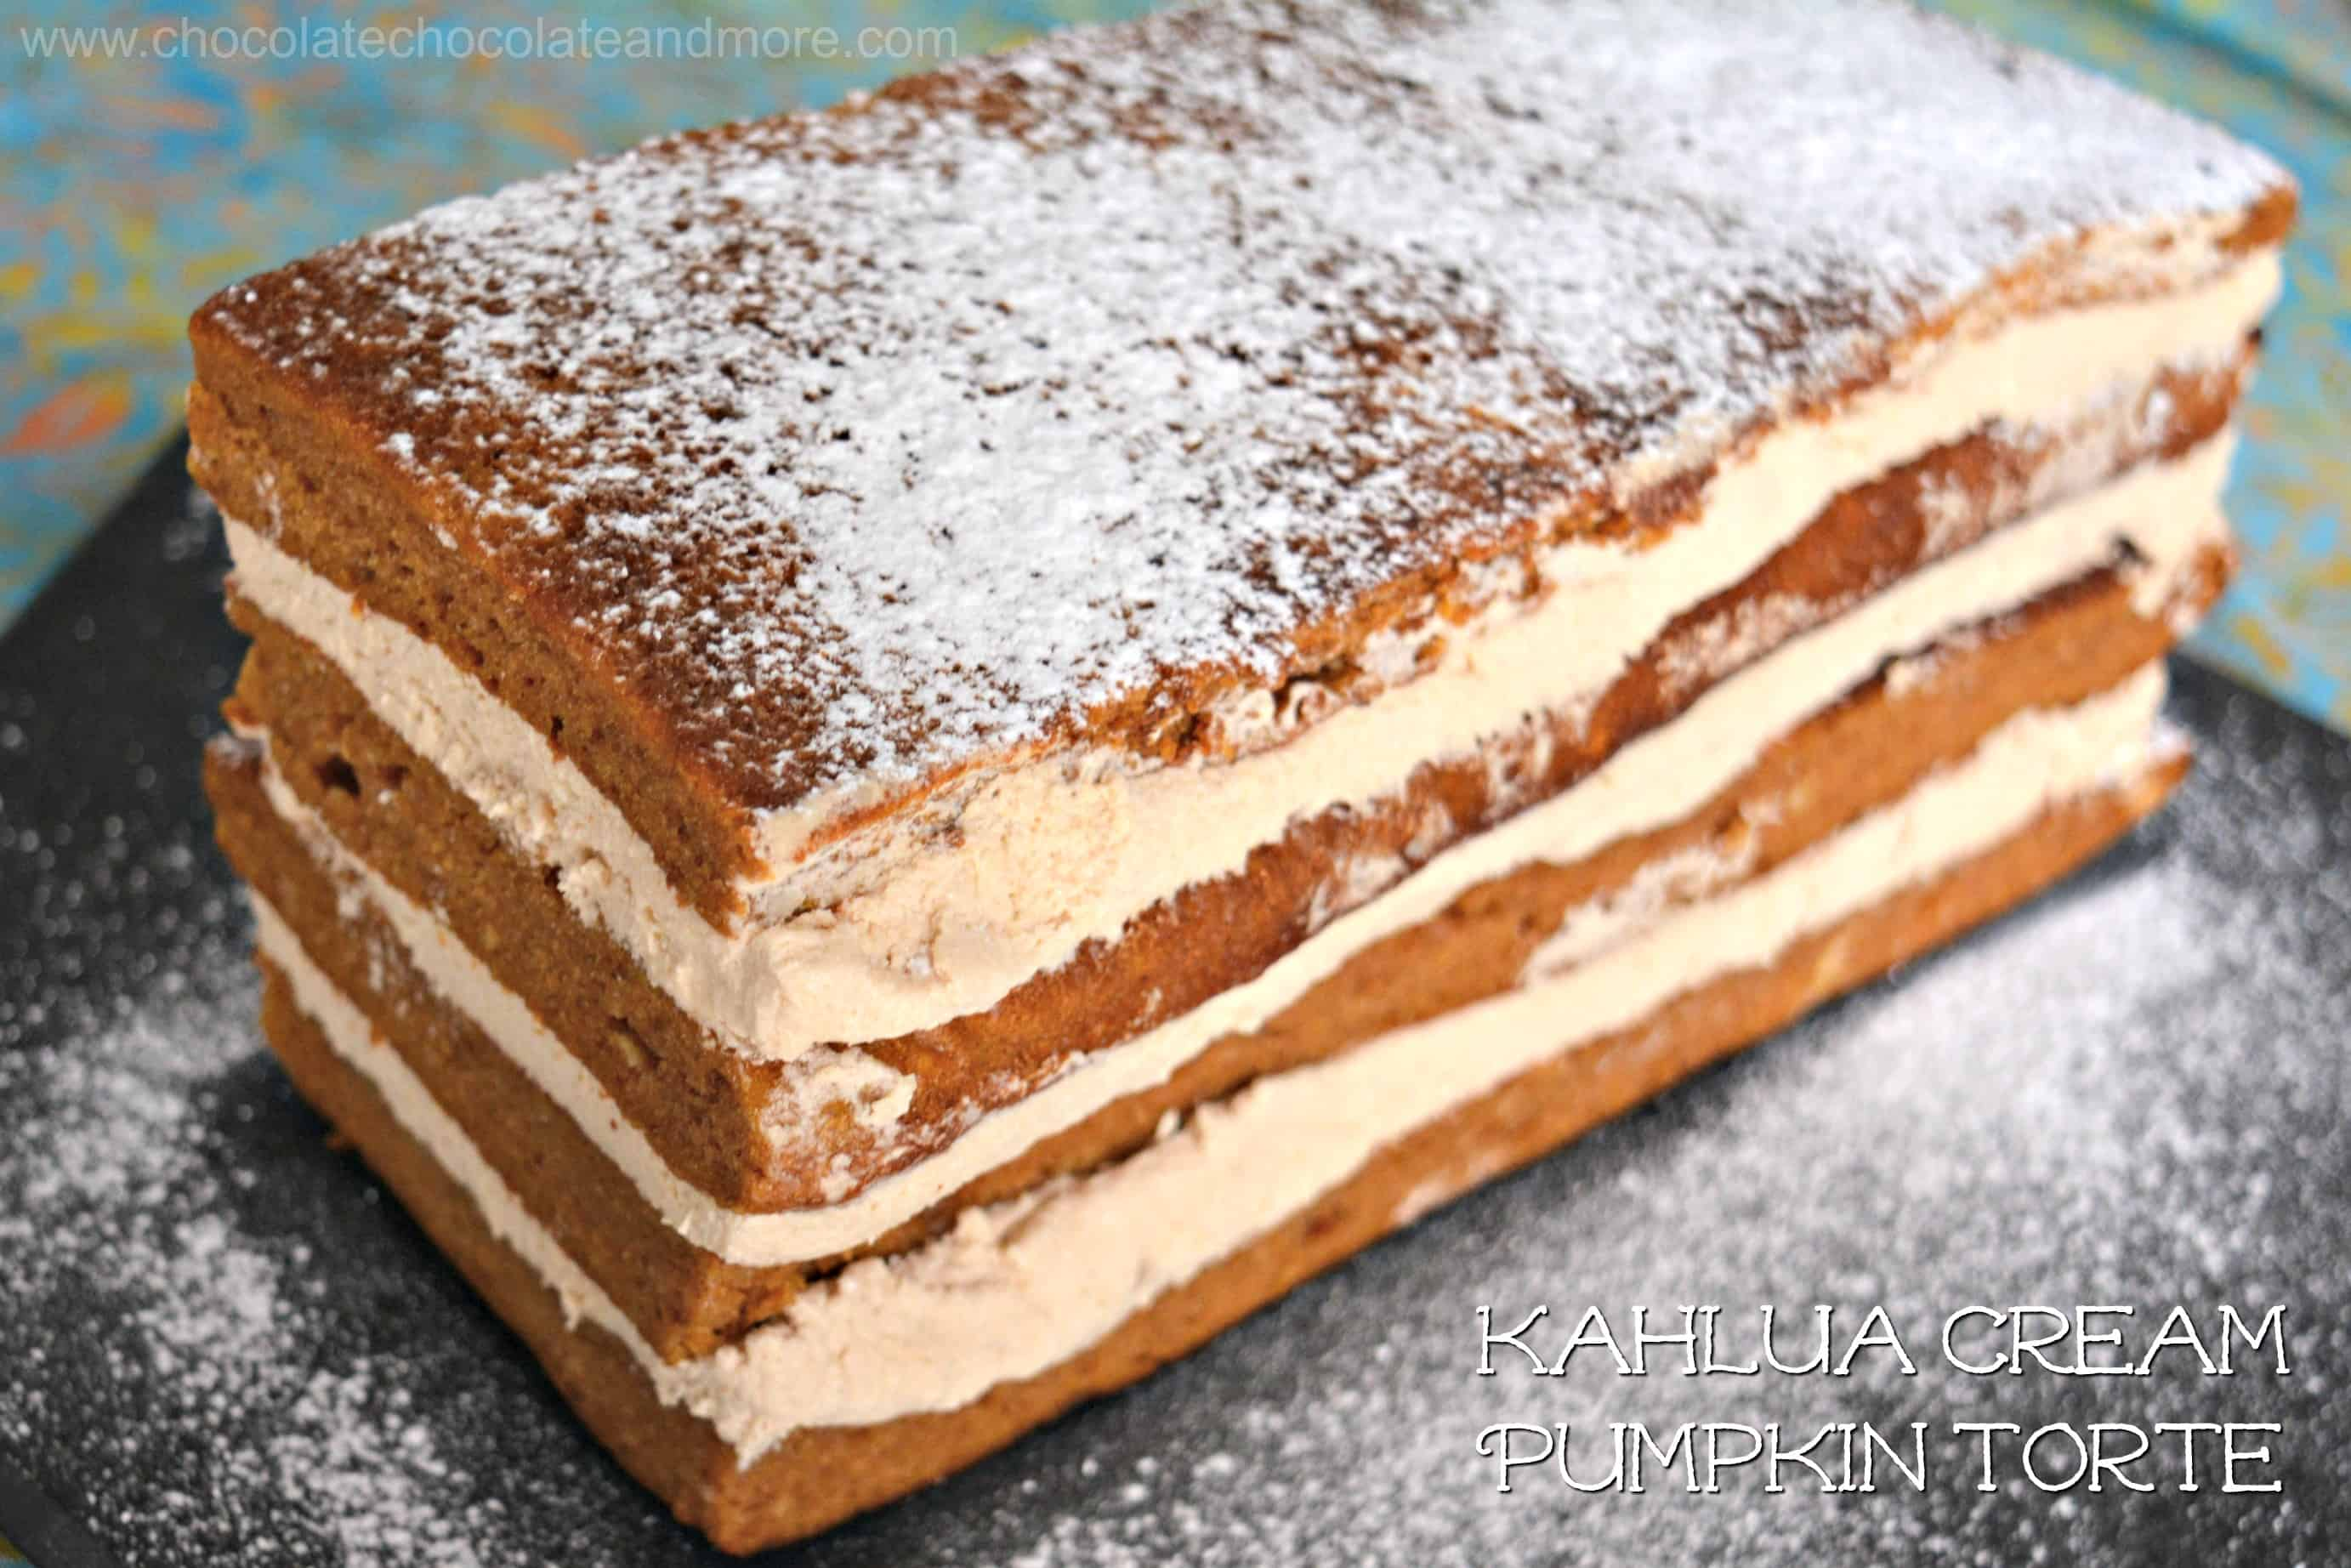 a rectangular cake made up of stacks of layers of spice cake filled with layers of cream and dusted with powdered sugar